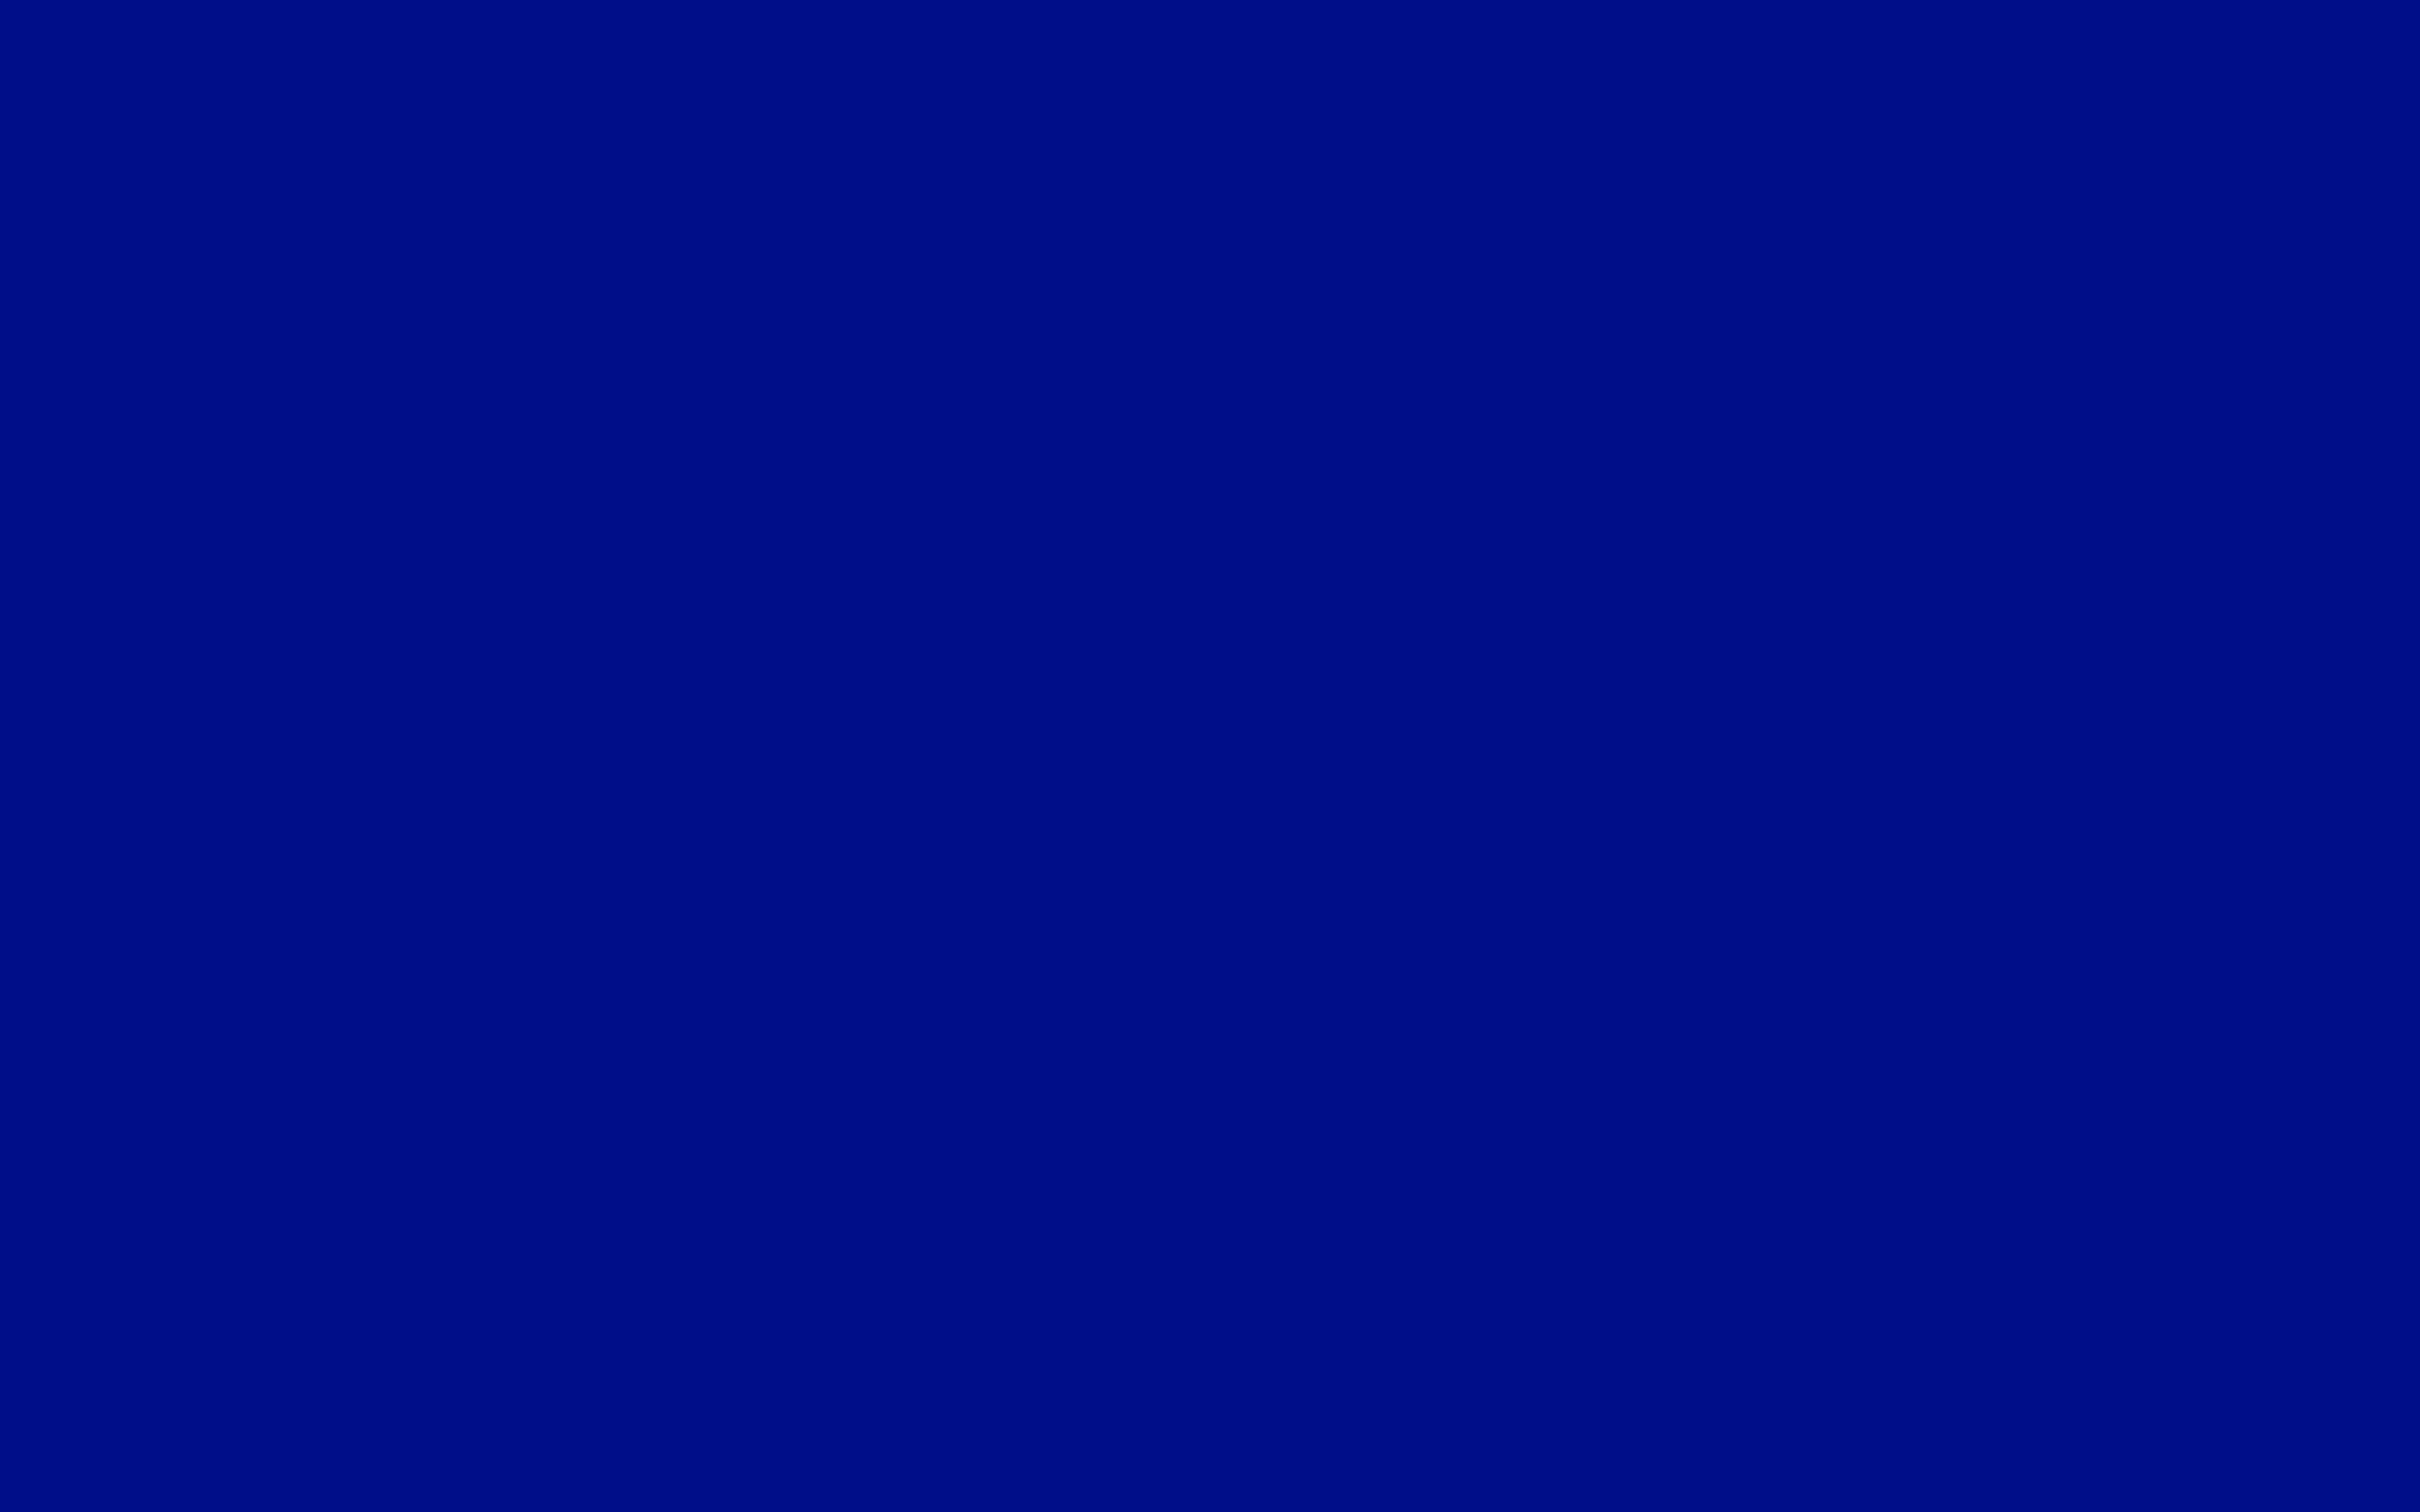 2560x1600 Phthalo Blue Solid Color Background